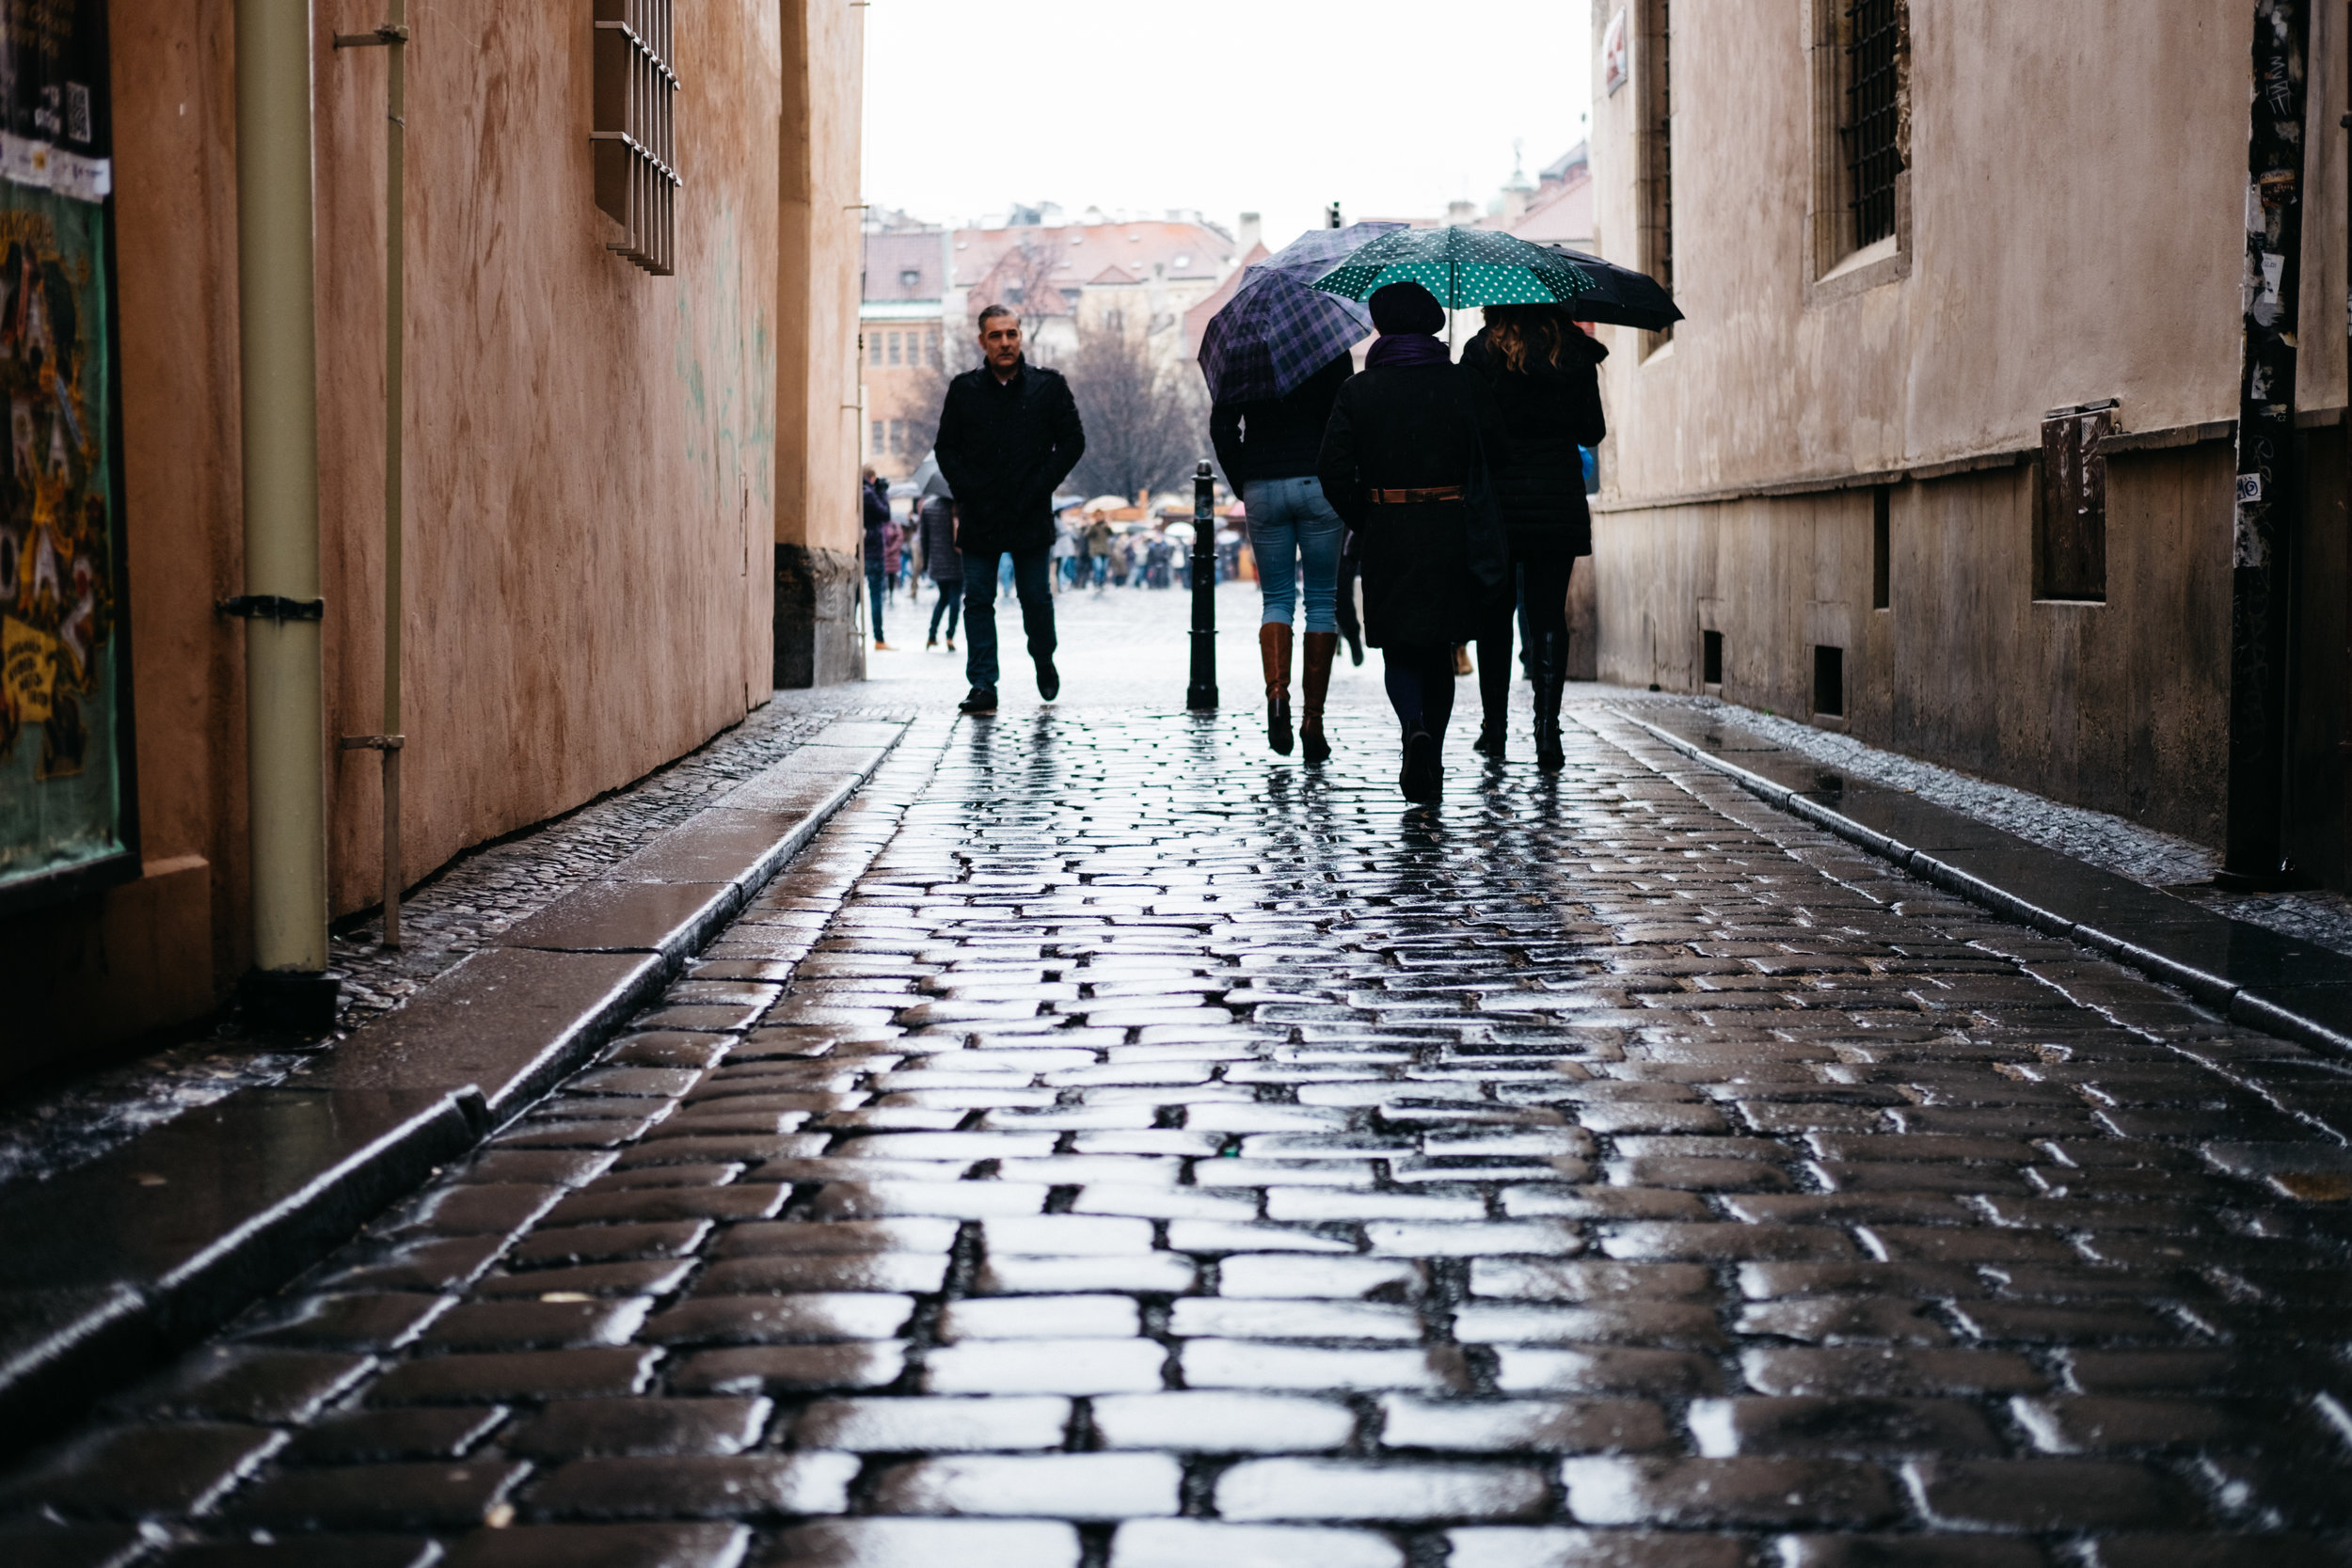 A rainy day in Prague made a great day of street photography